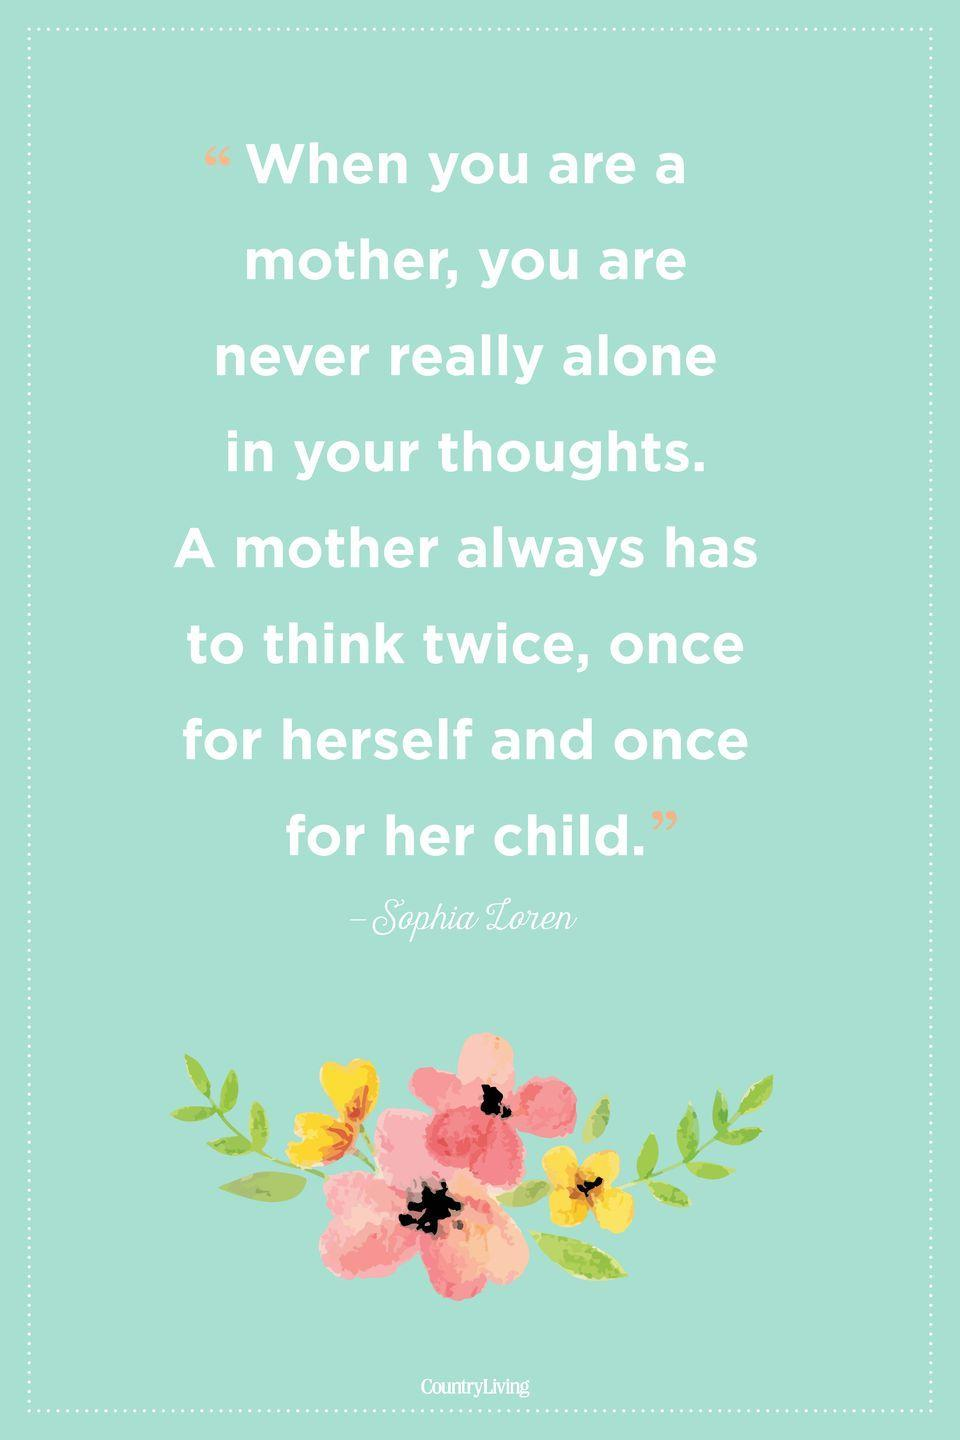 "<p>""When you are a mother, you are never really alone in your thoughts. A mother always has to think twice, once for herself and once for her child.""</p>"